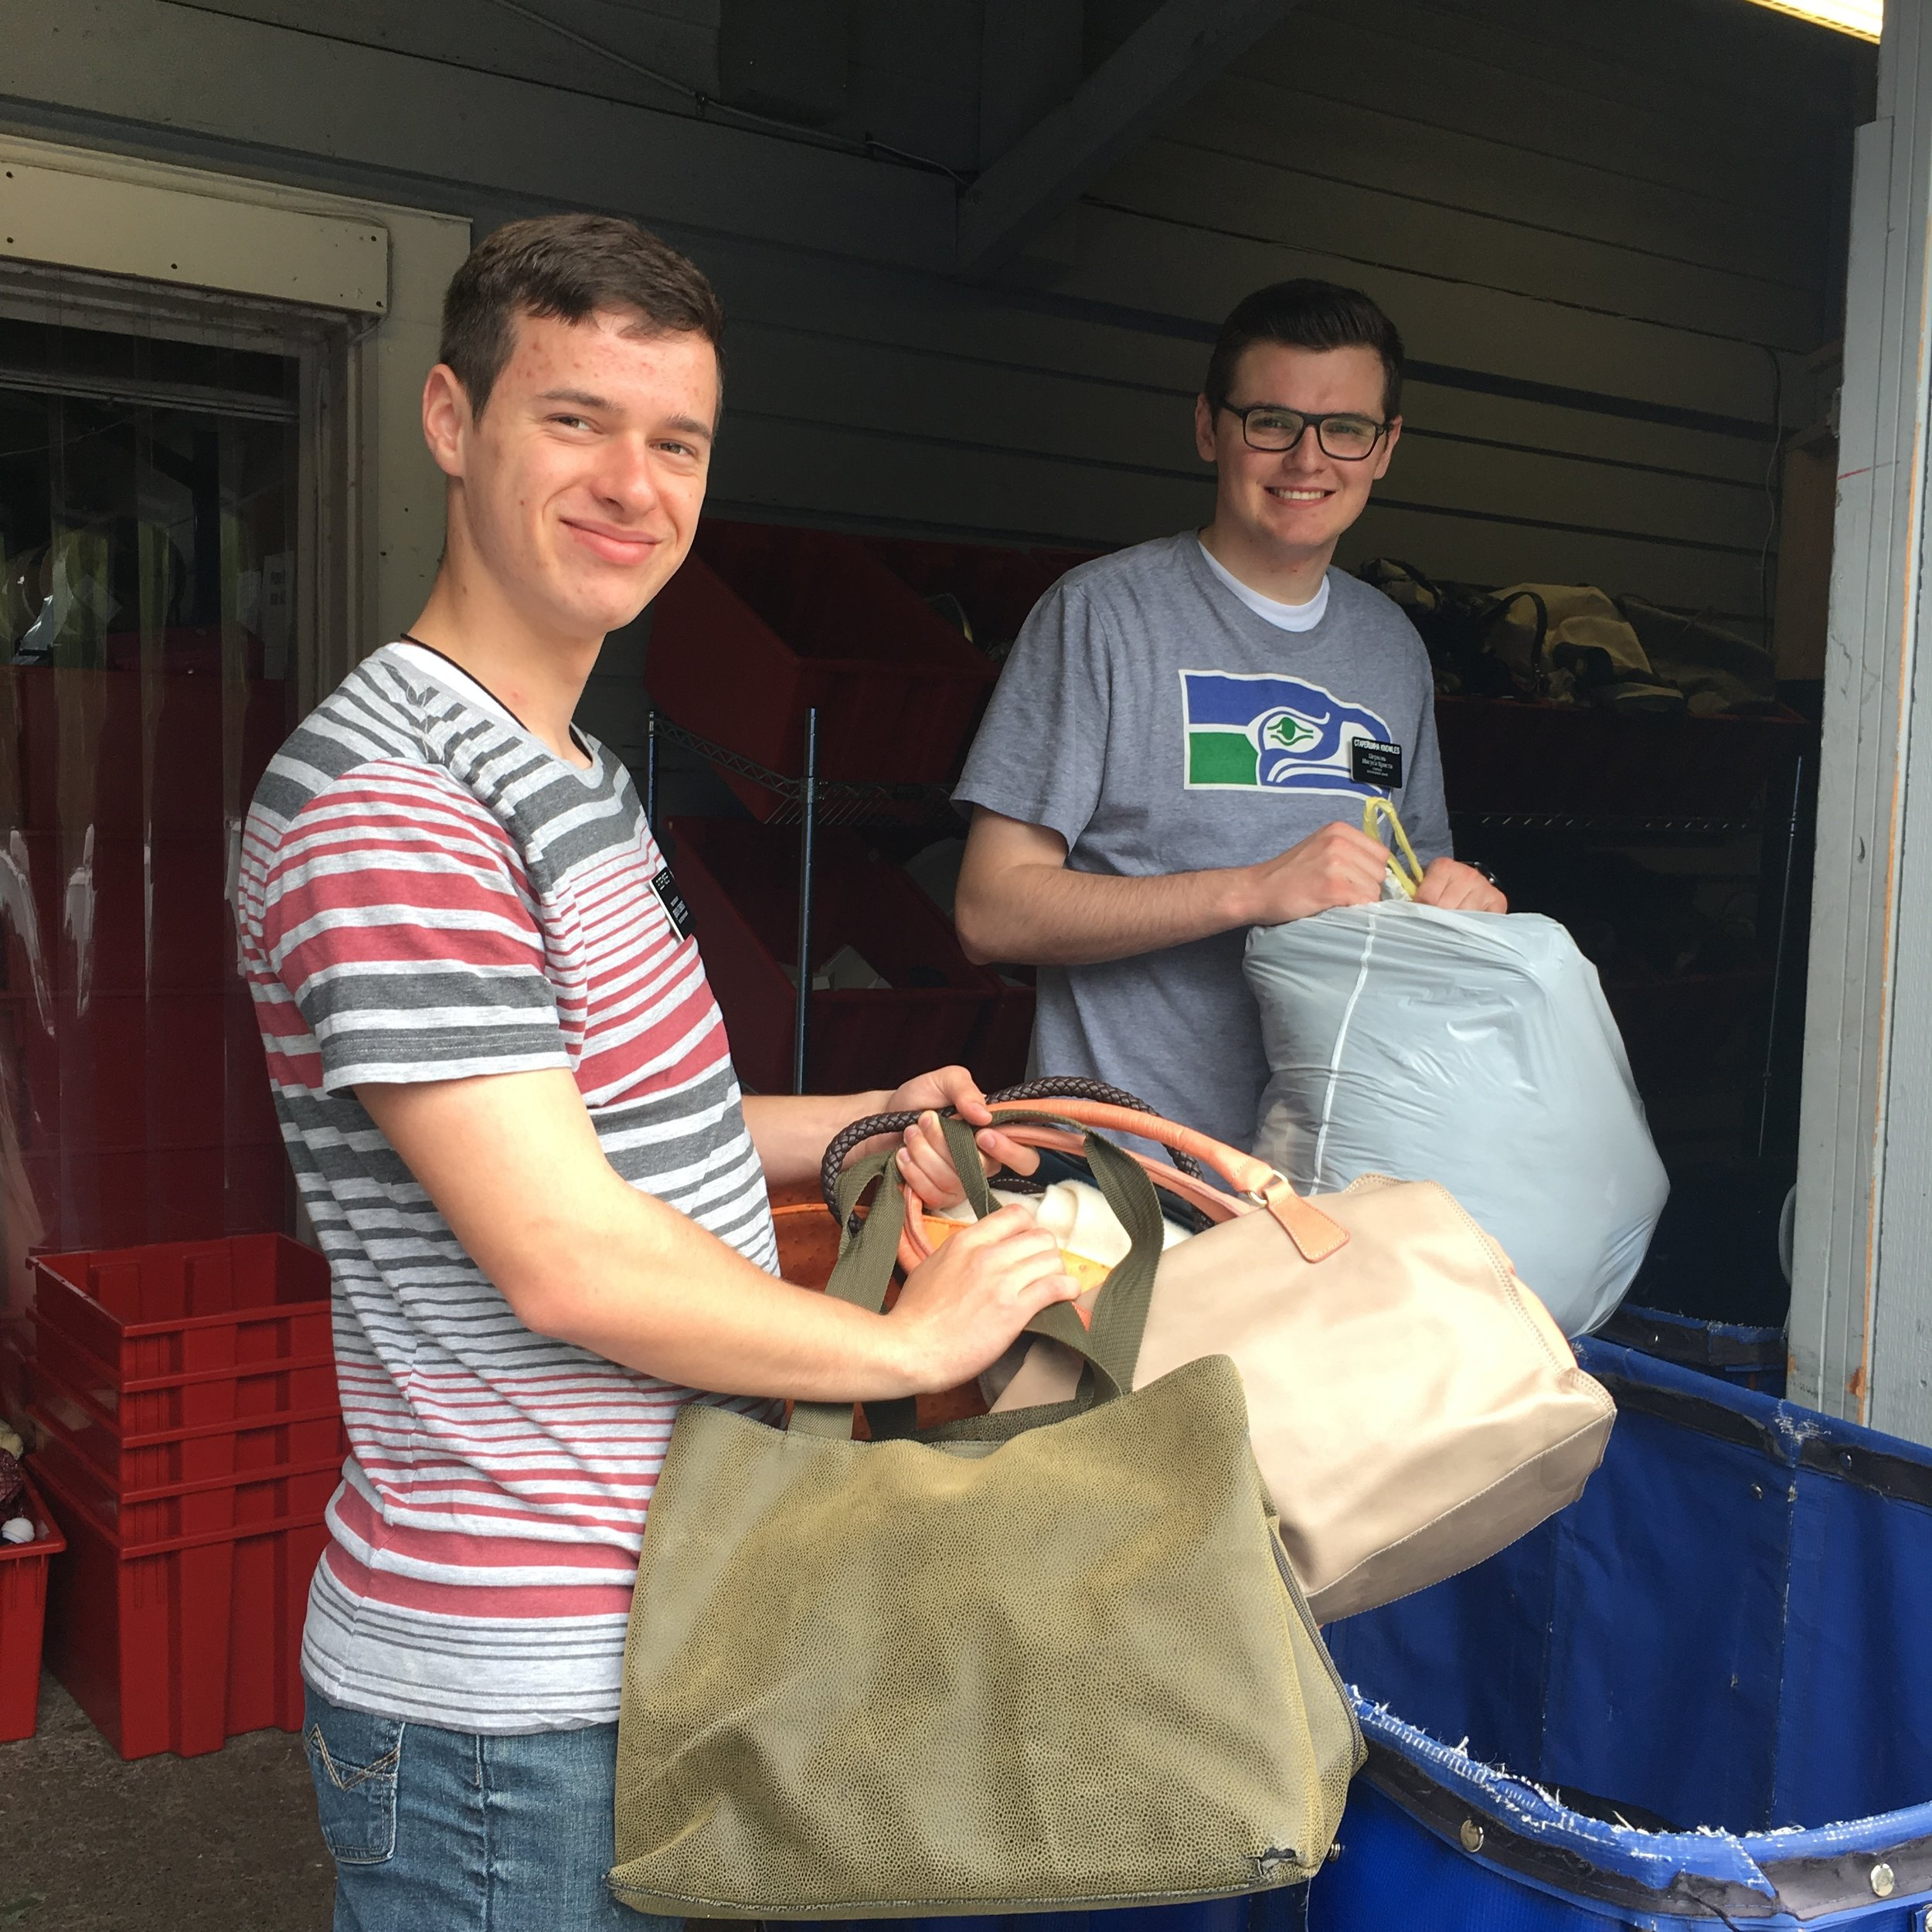 LDS Church:  Mercer Island's local LDS church places a high value on making a contribution to the well being of our community through volunteering. Over a period of several months their Elders rotate covering our donation center every Wednesday in two 4-hour shifts.